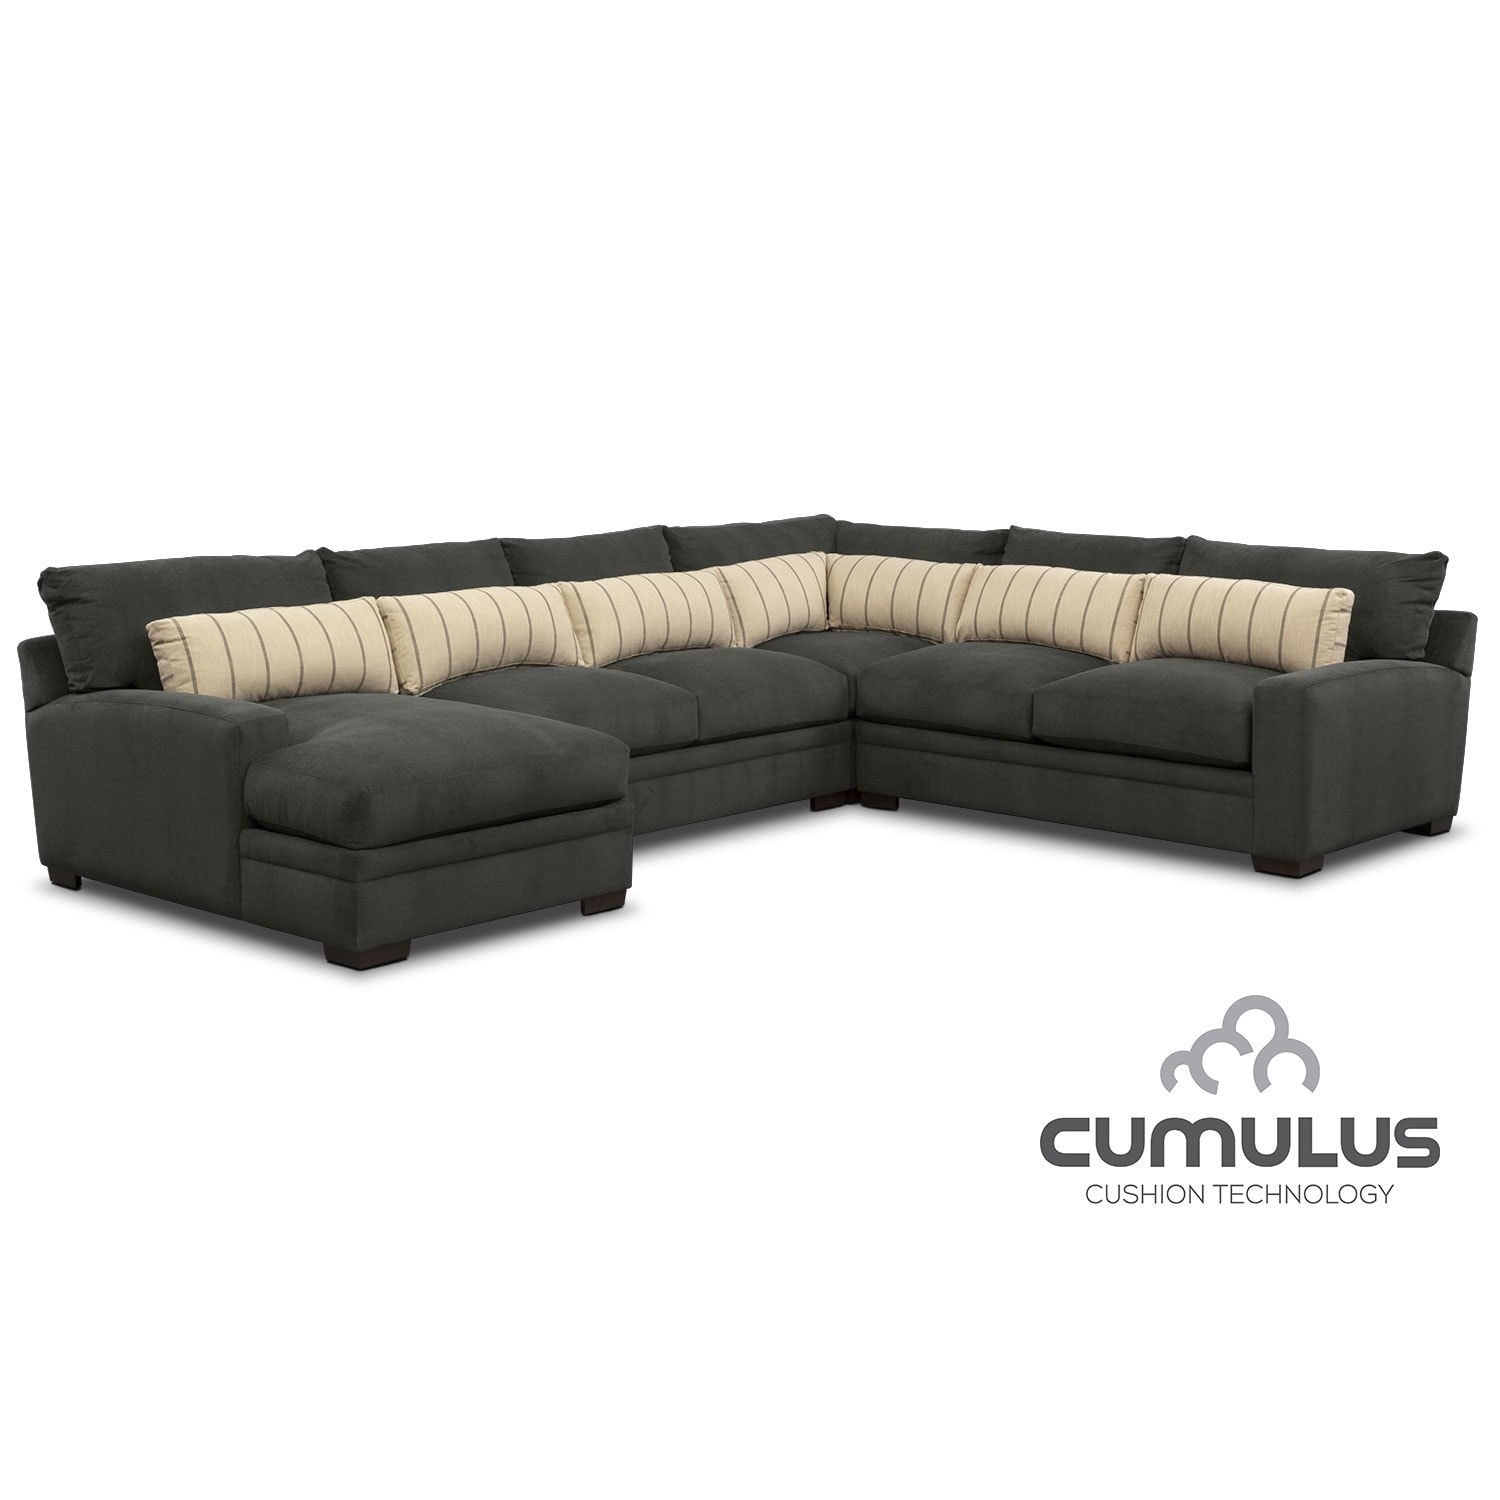 Ultimate comfort by kroehler value city furniture for Affordable furniture 3 piece sectional in wyoming saddle